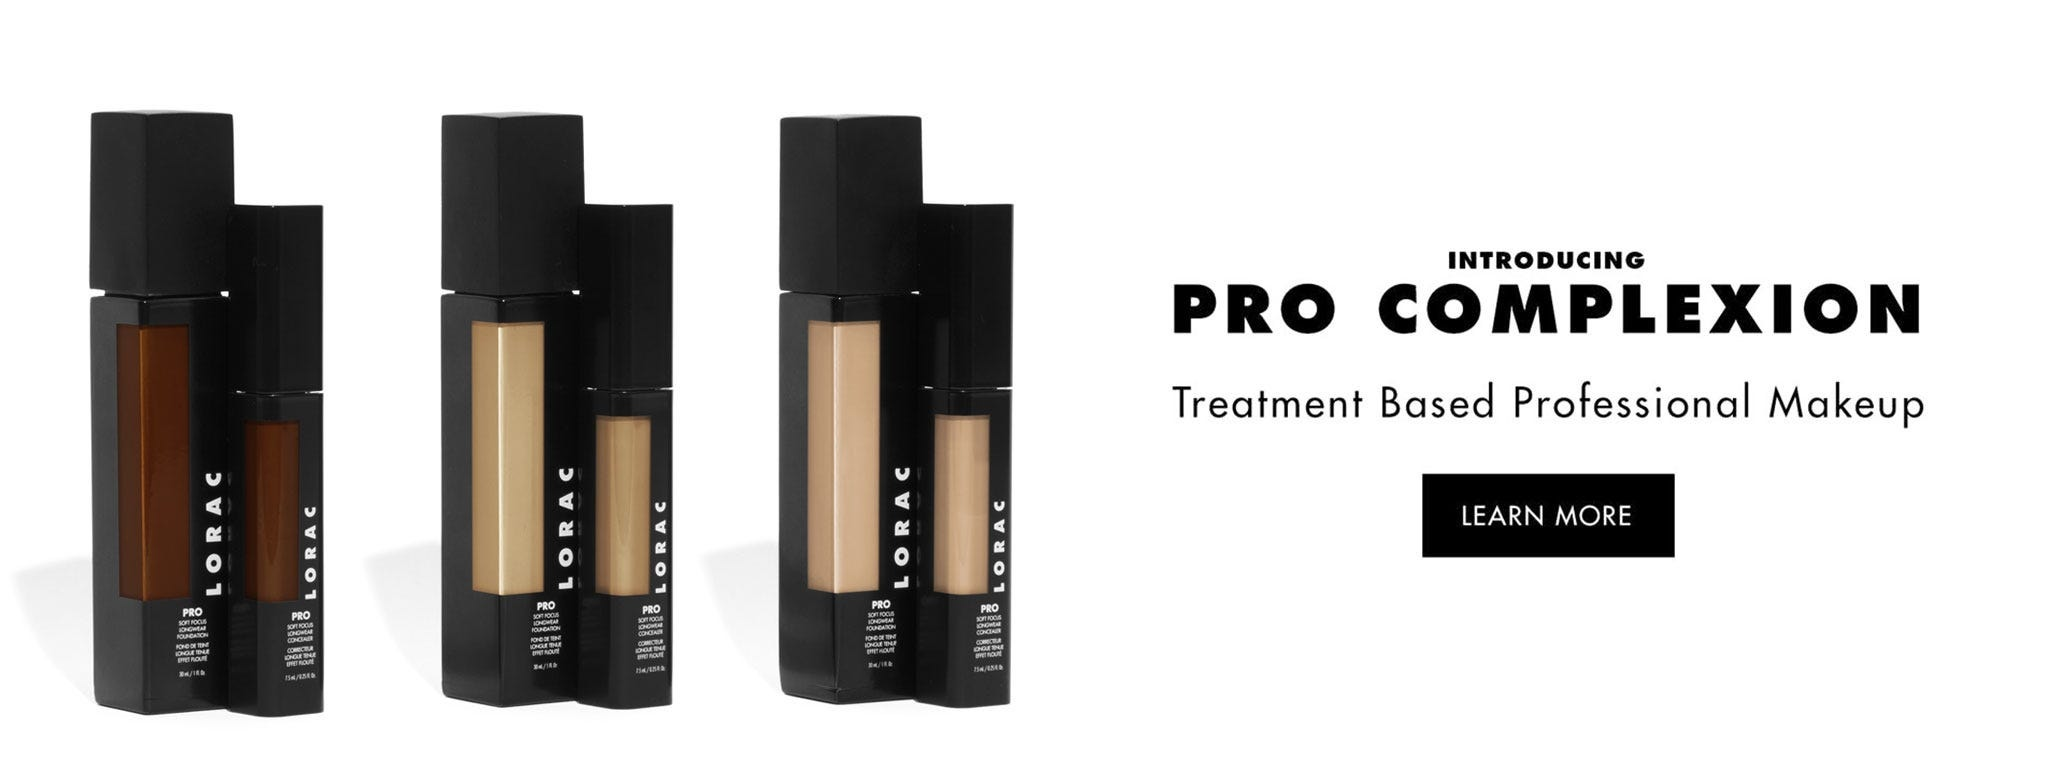 Pro Complexion InStyle Magazine Feature | Learn More| LORAC